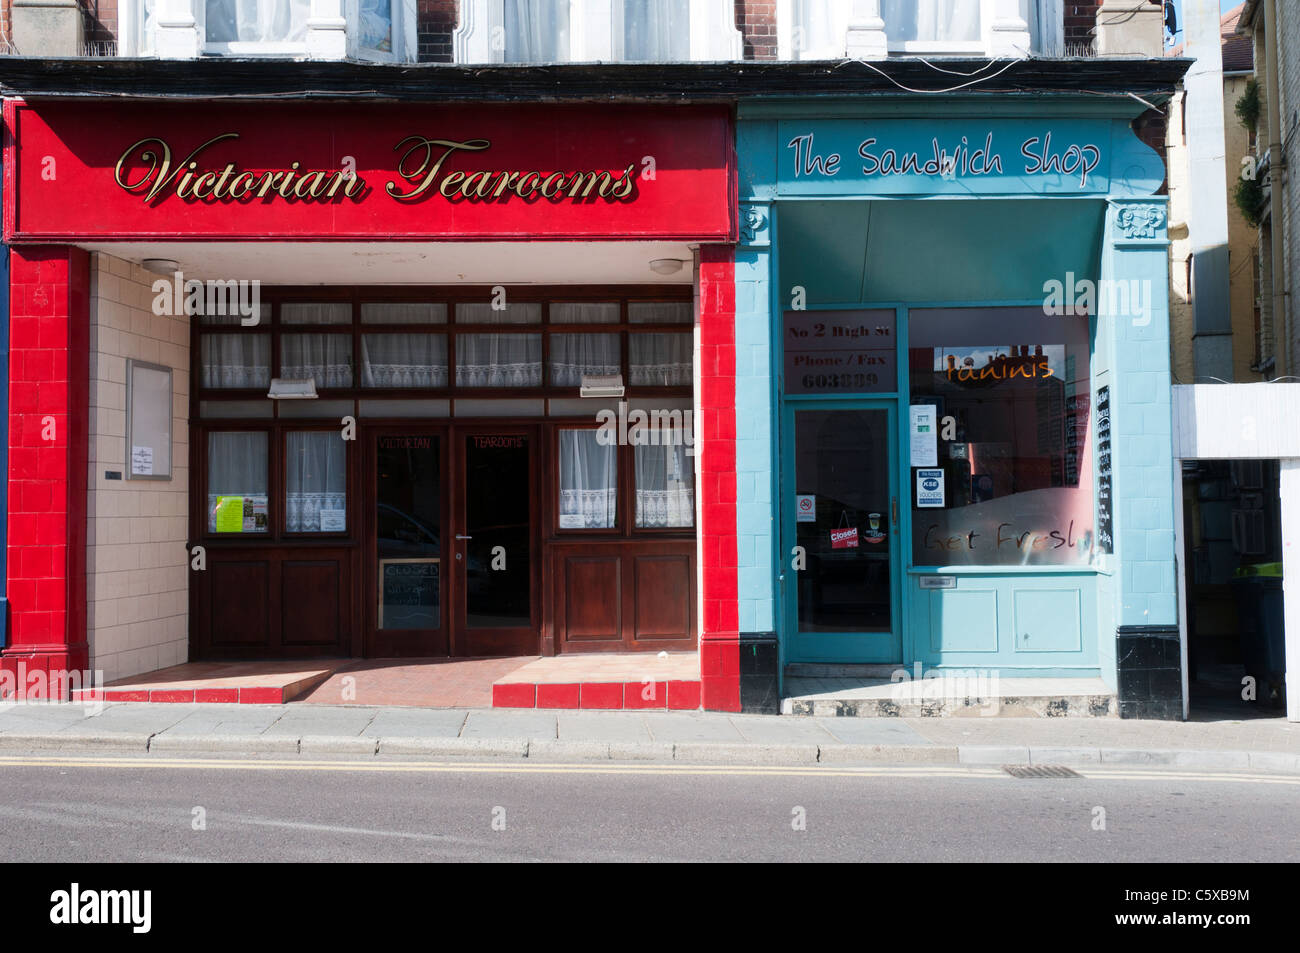 Victorian Tearooms and The Sandwich Shop, adjacent shops in Broadstairs High Street, Kent Stock Photo